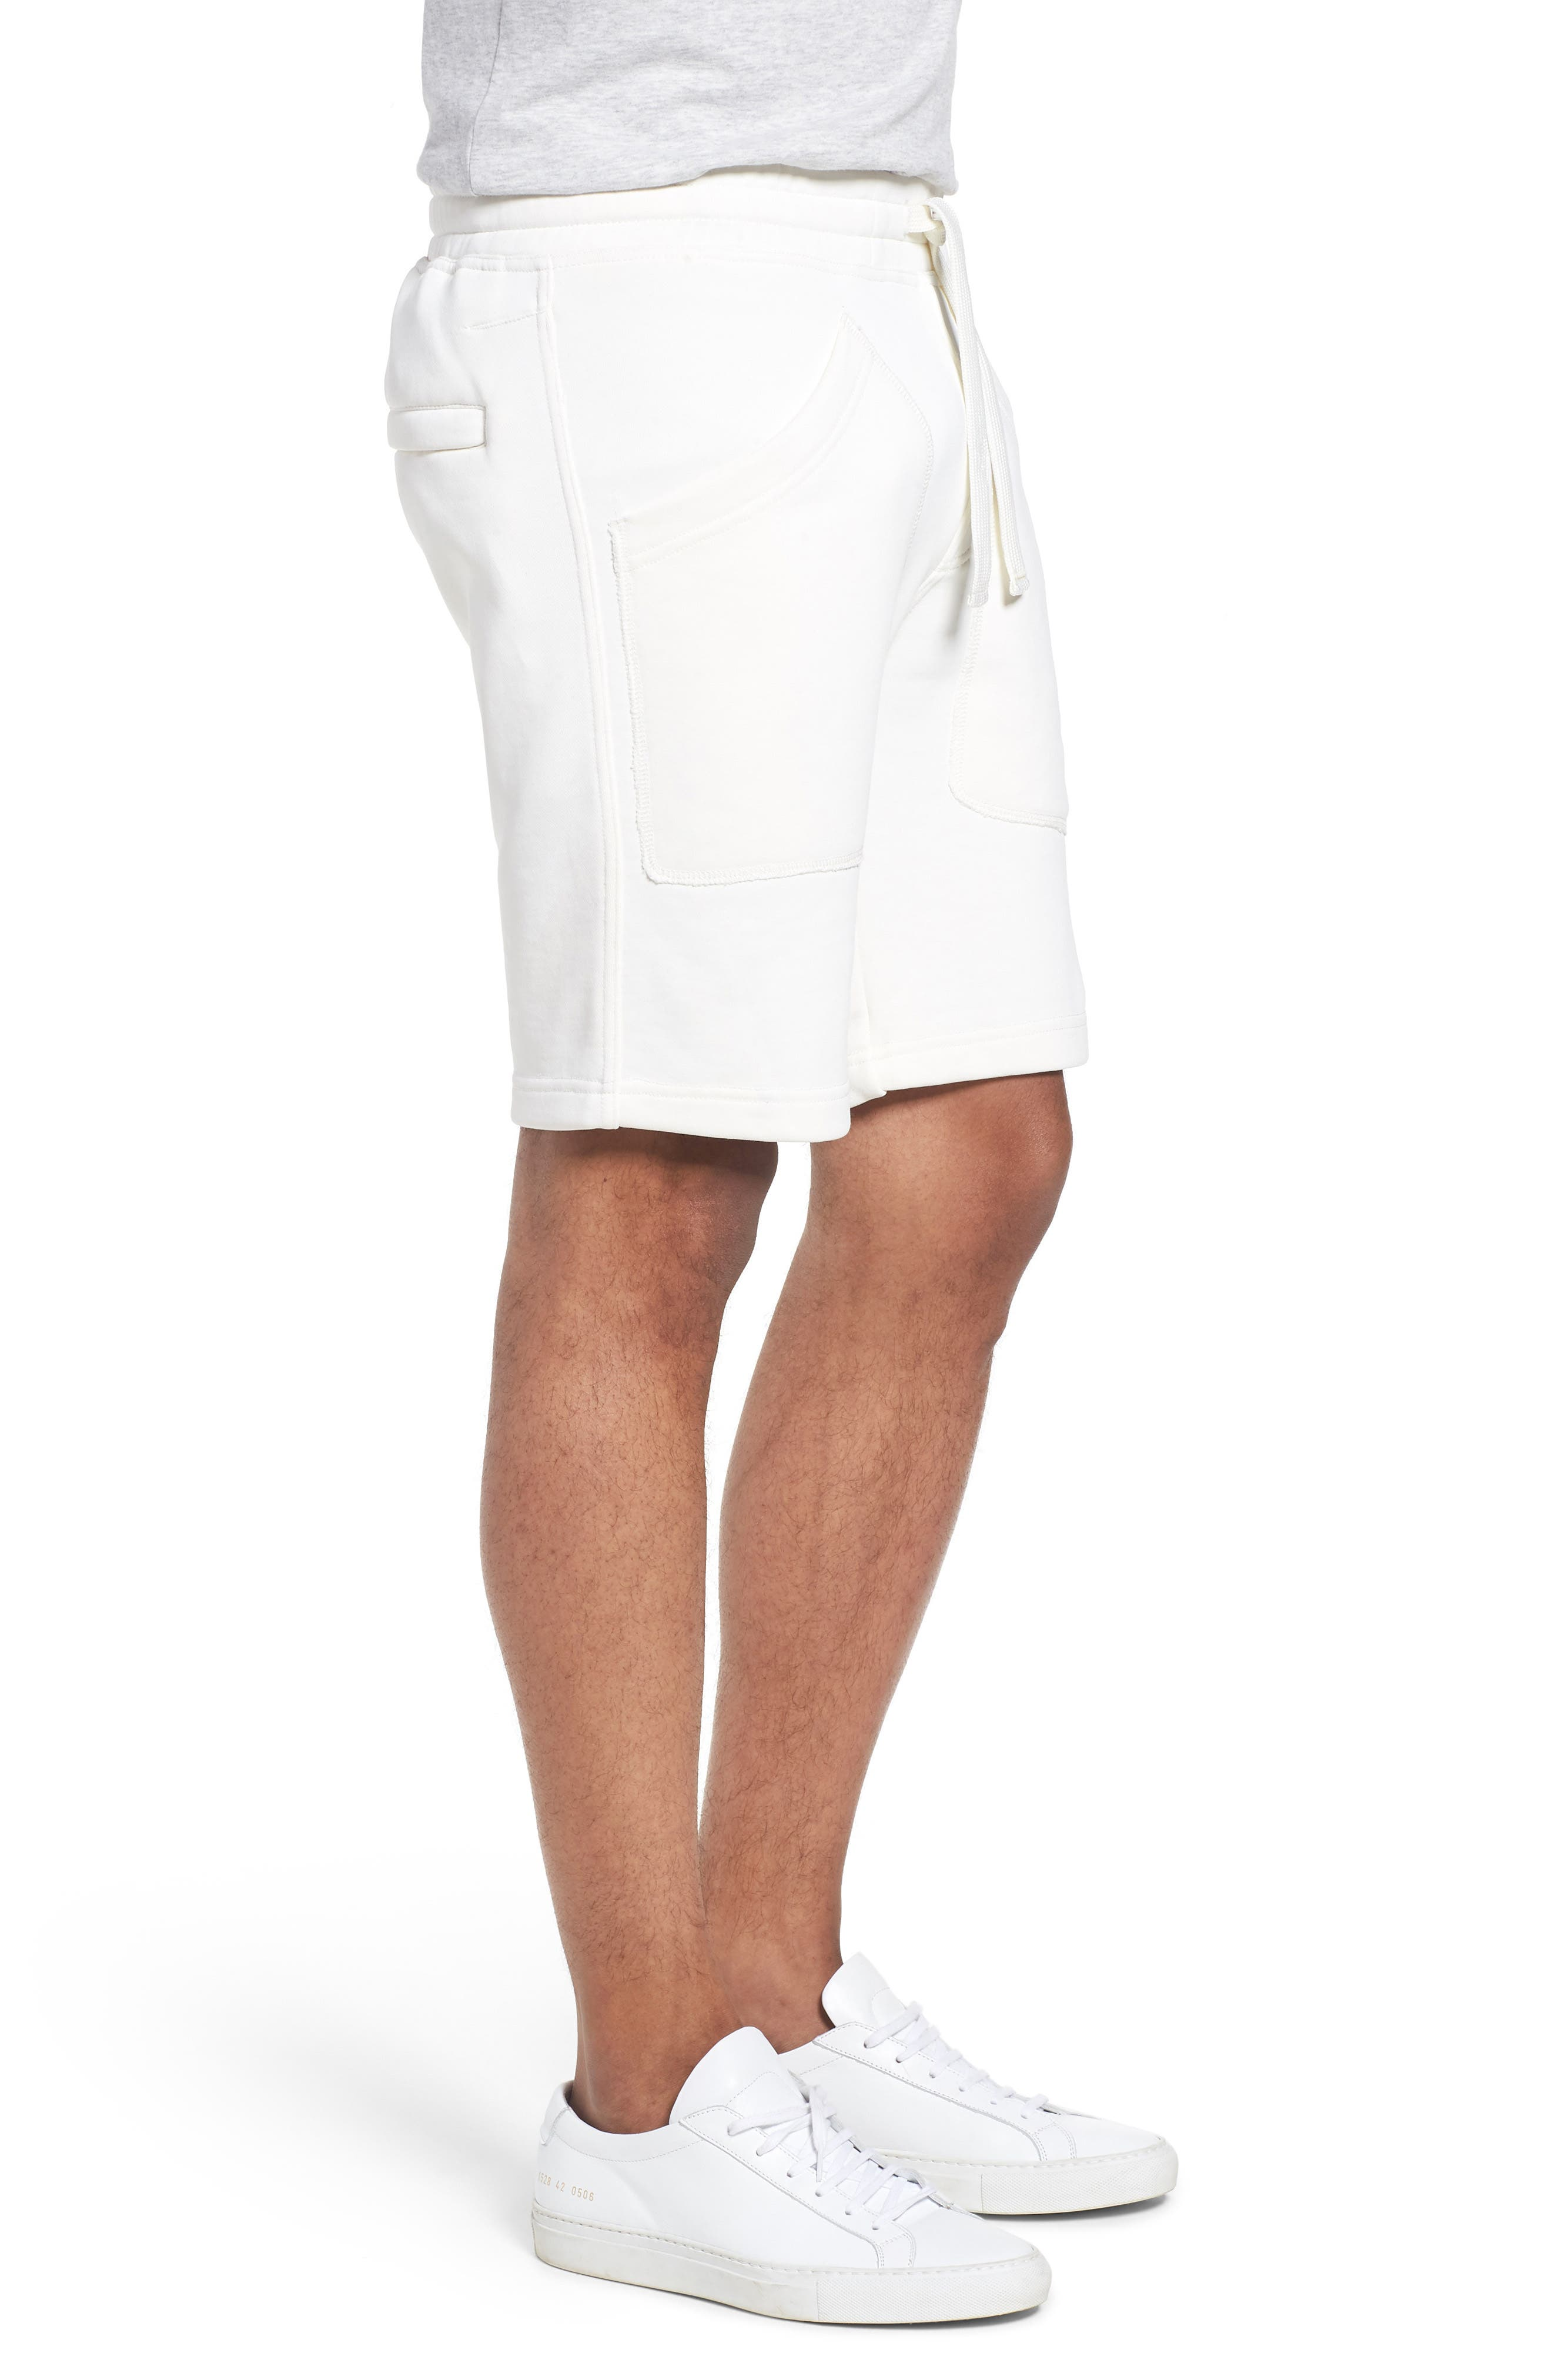 Lux French Terry Shorts,                             Alternate thumbnail 3, color,                             250